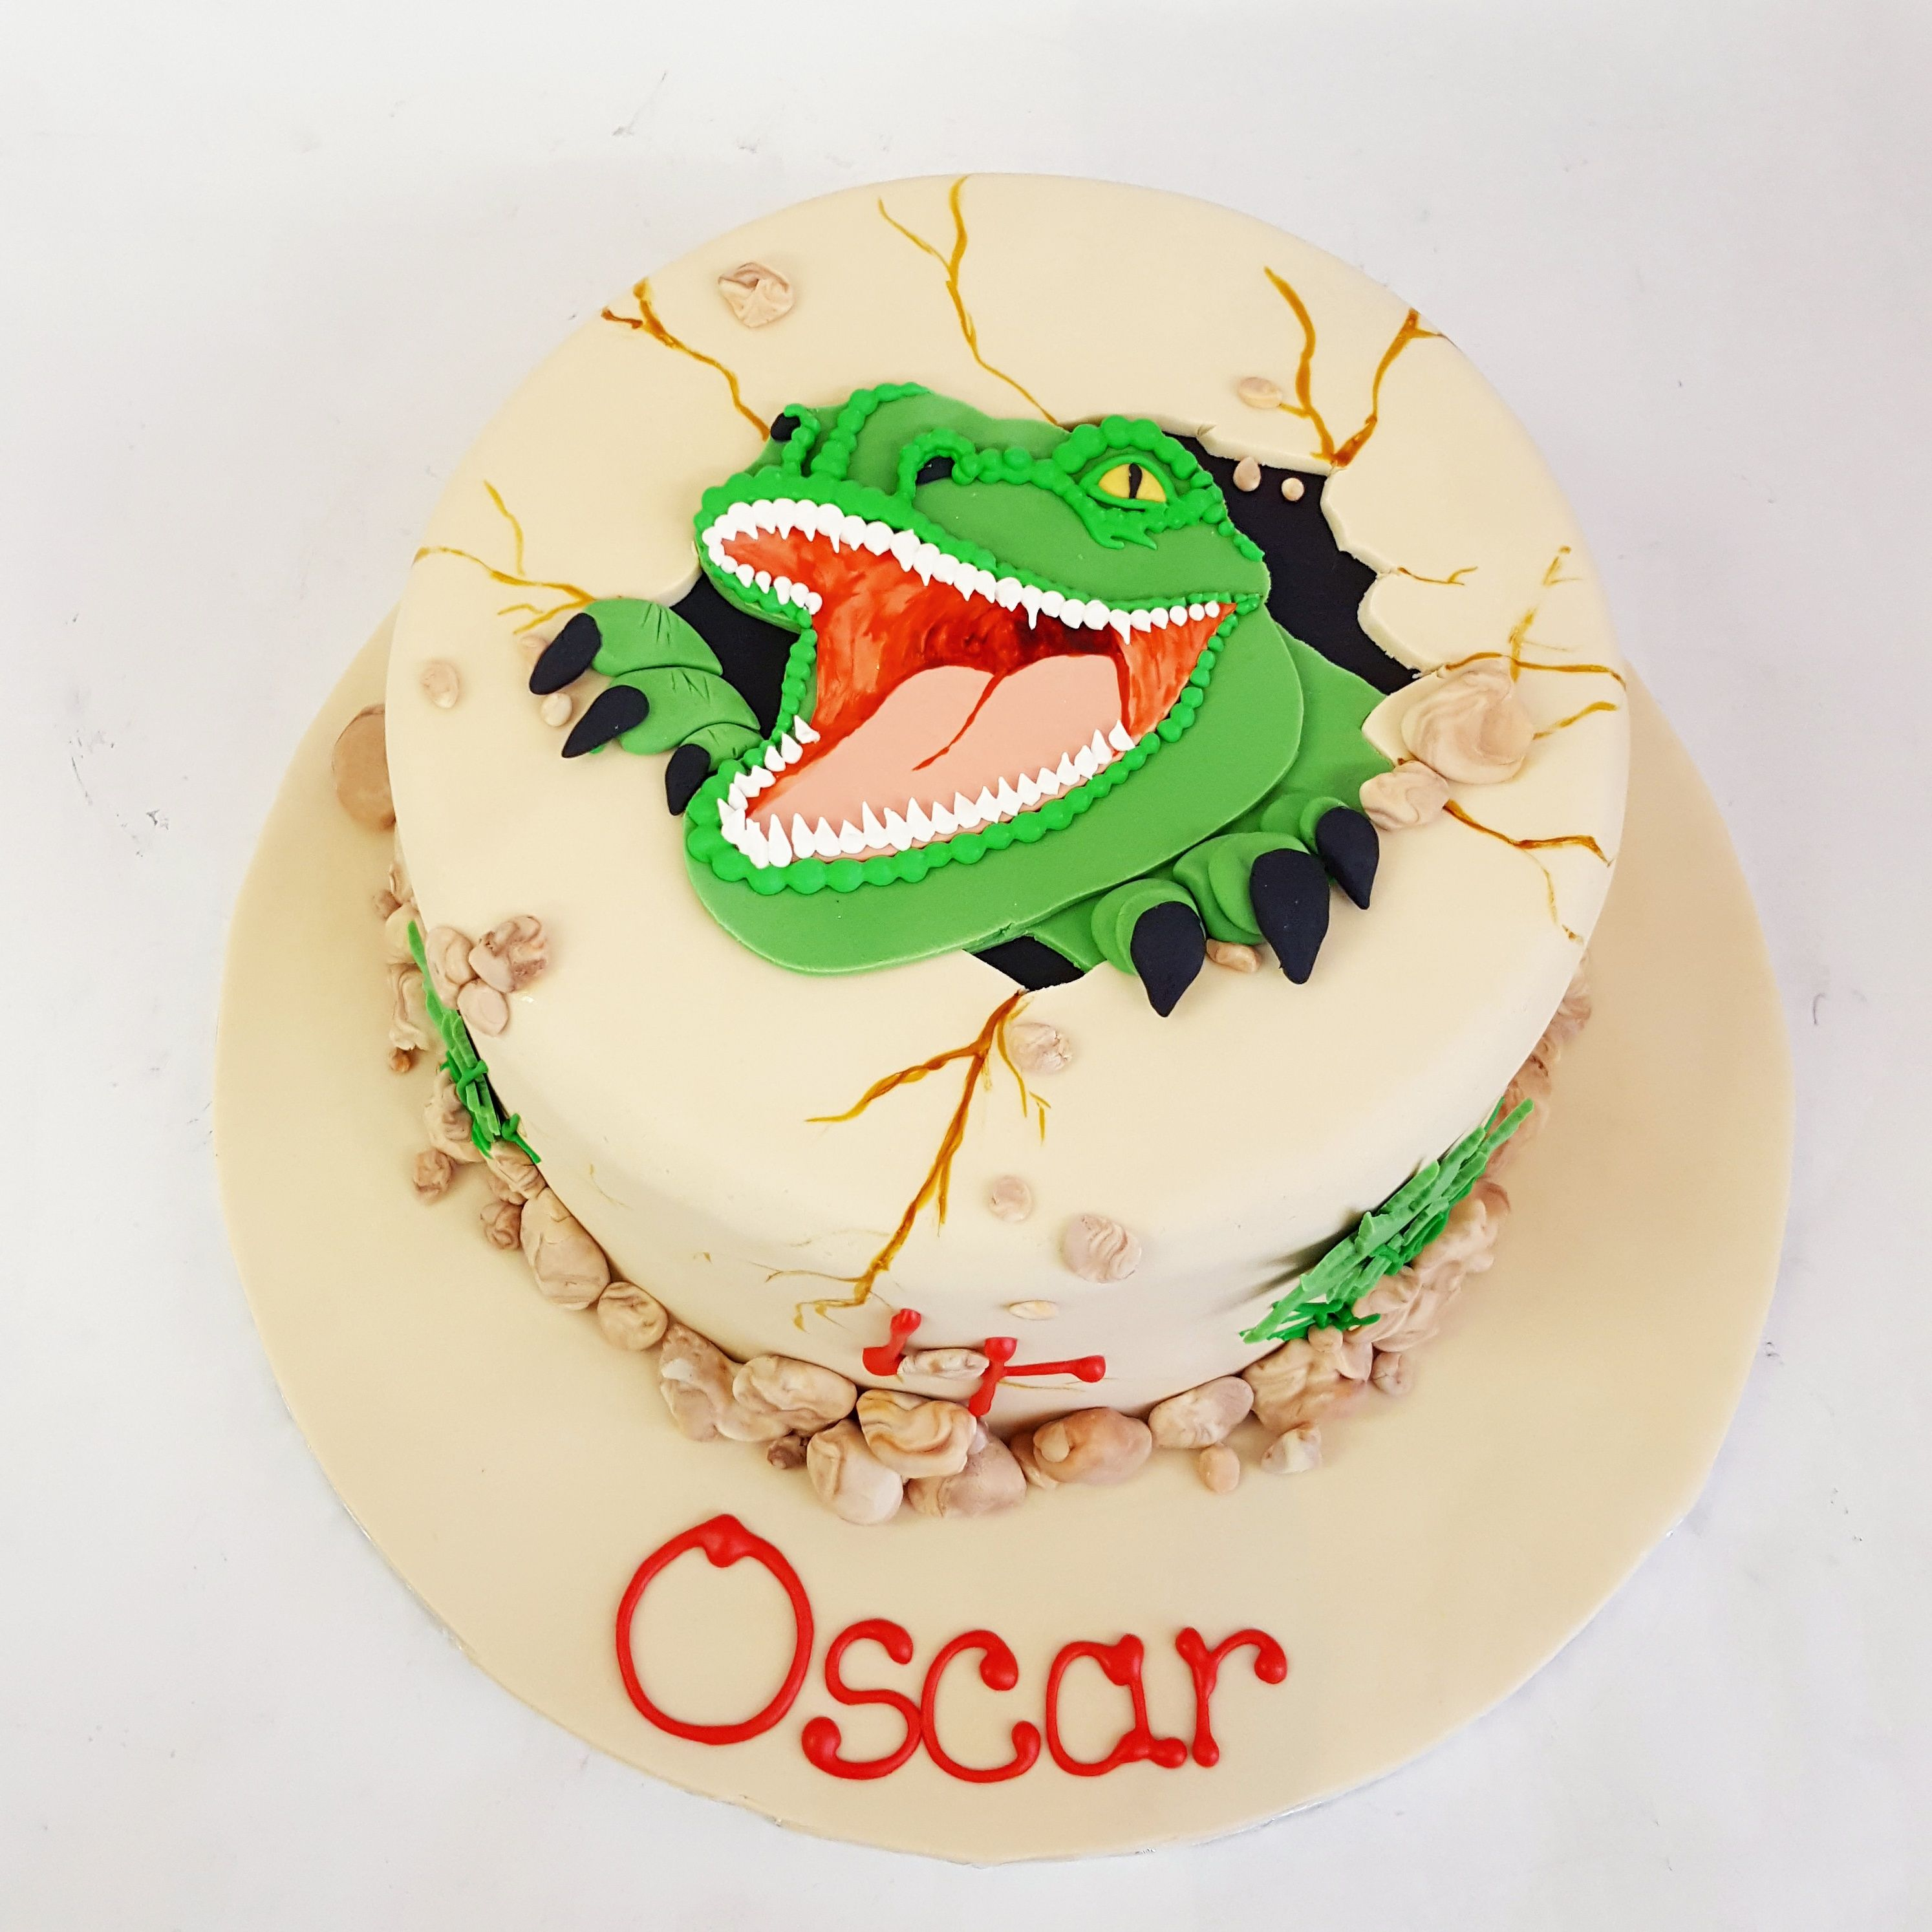 This dinosaur is breaking out of the cake Birthday Cakes for Kids